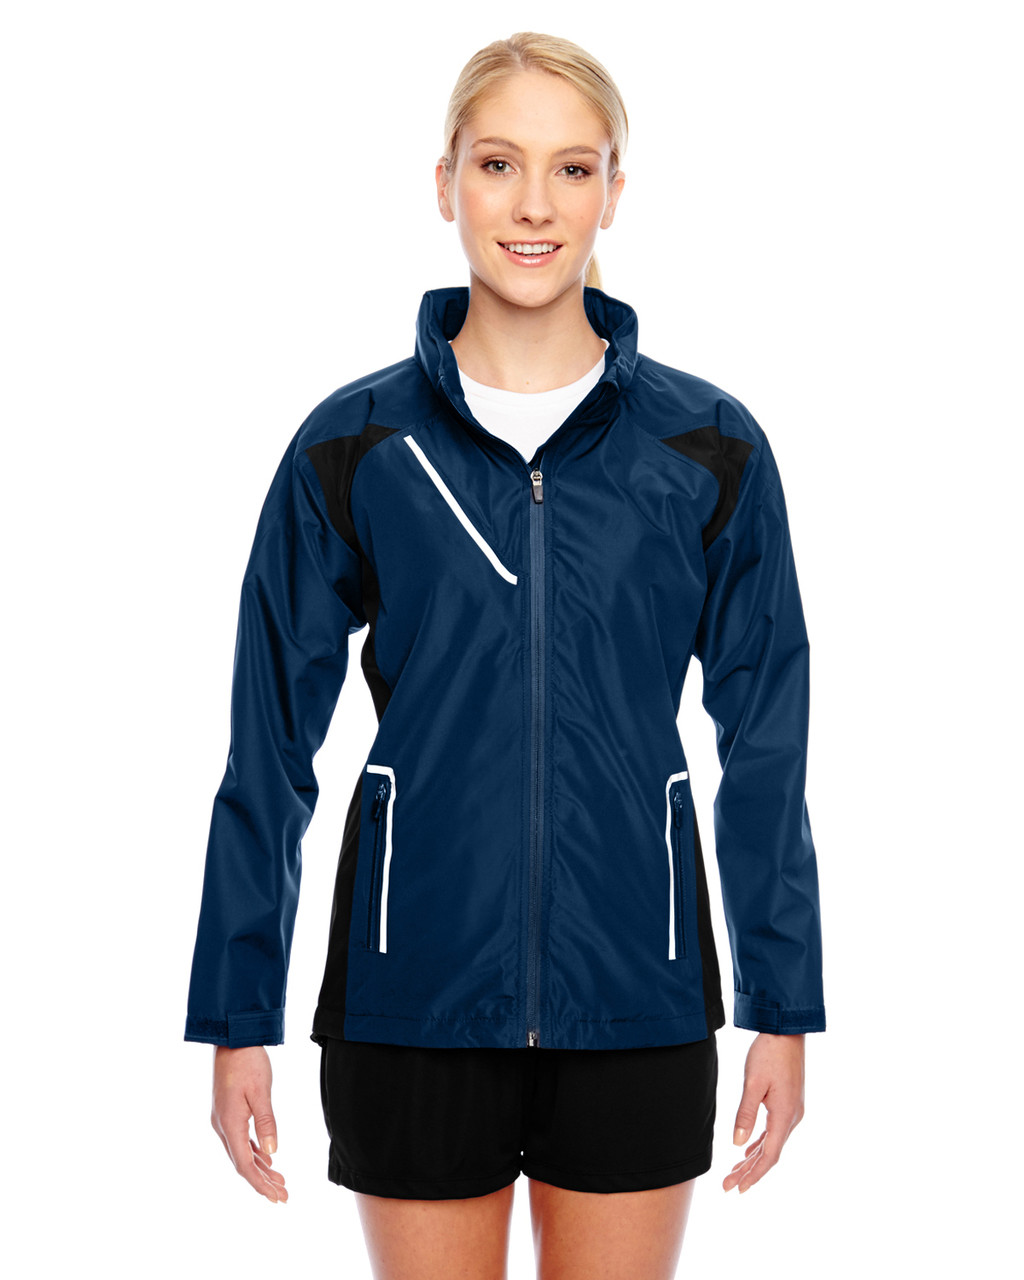 Sport Dark Navy - TT86W Team 365 Dominator Waterproof Jacket